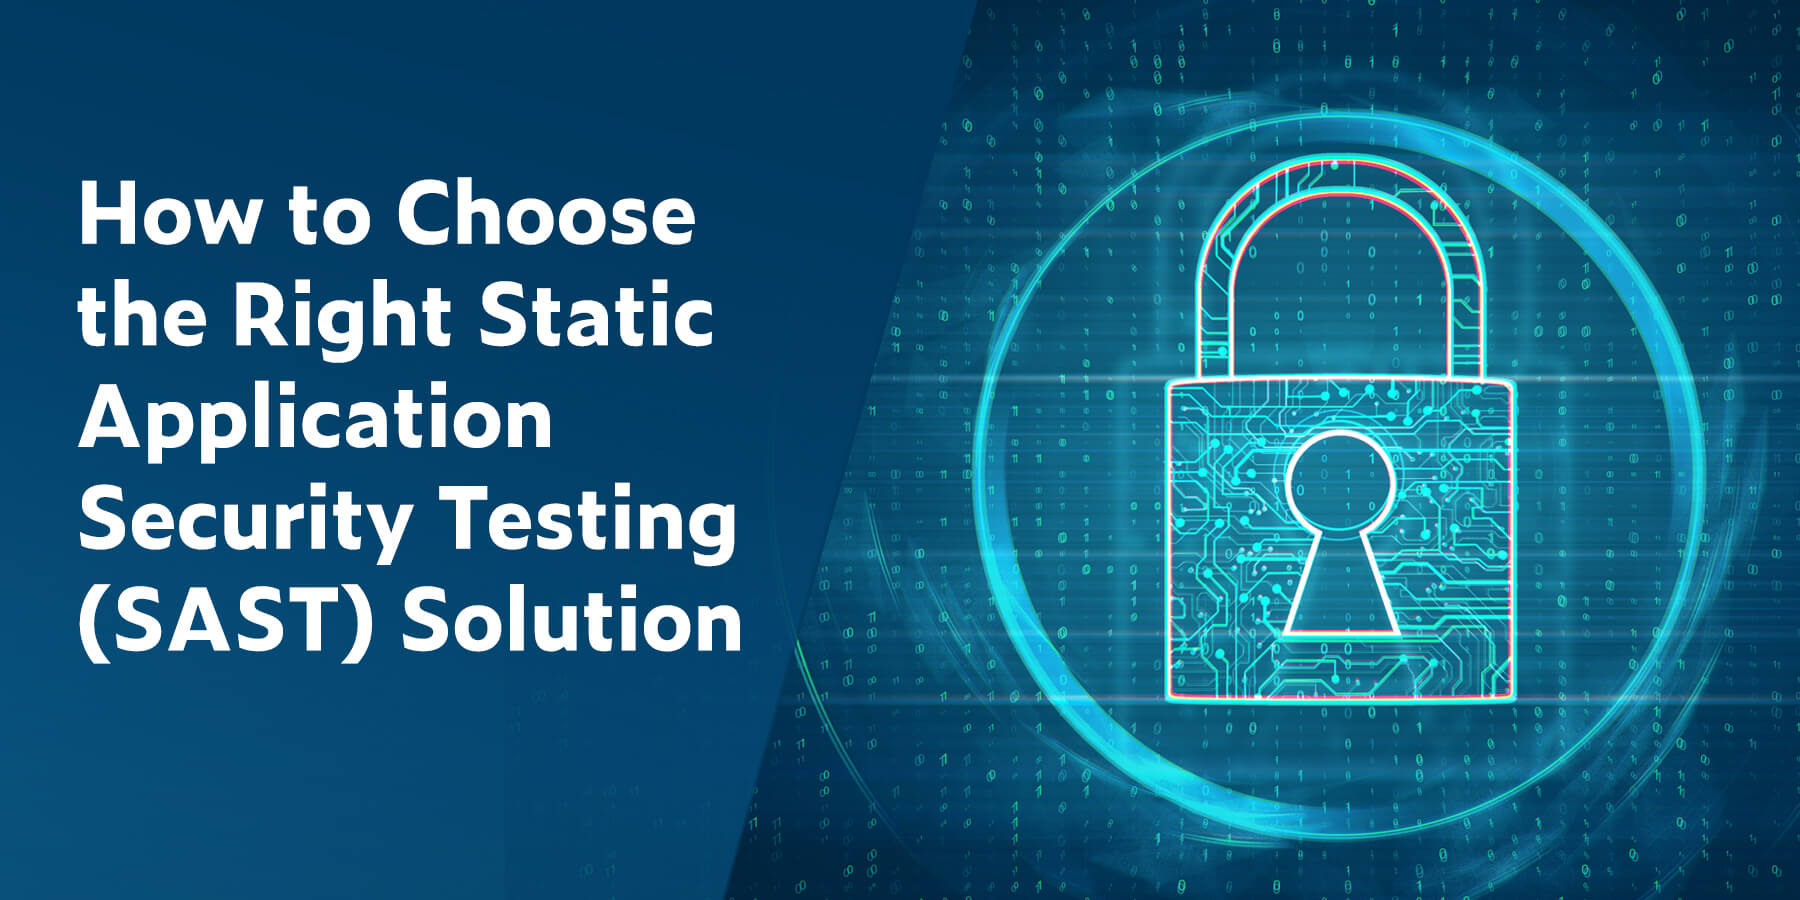 How to Choose the Right Static Application Security Testing (SAST) Solution